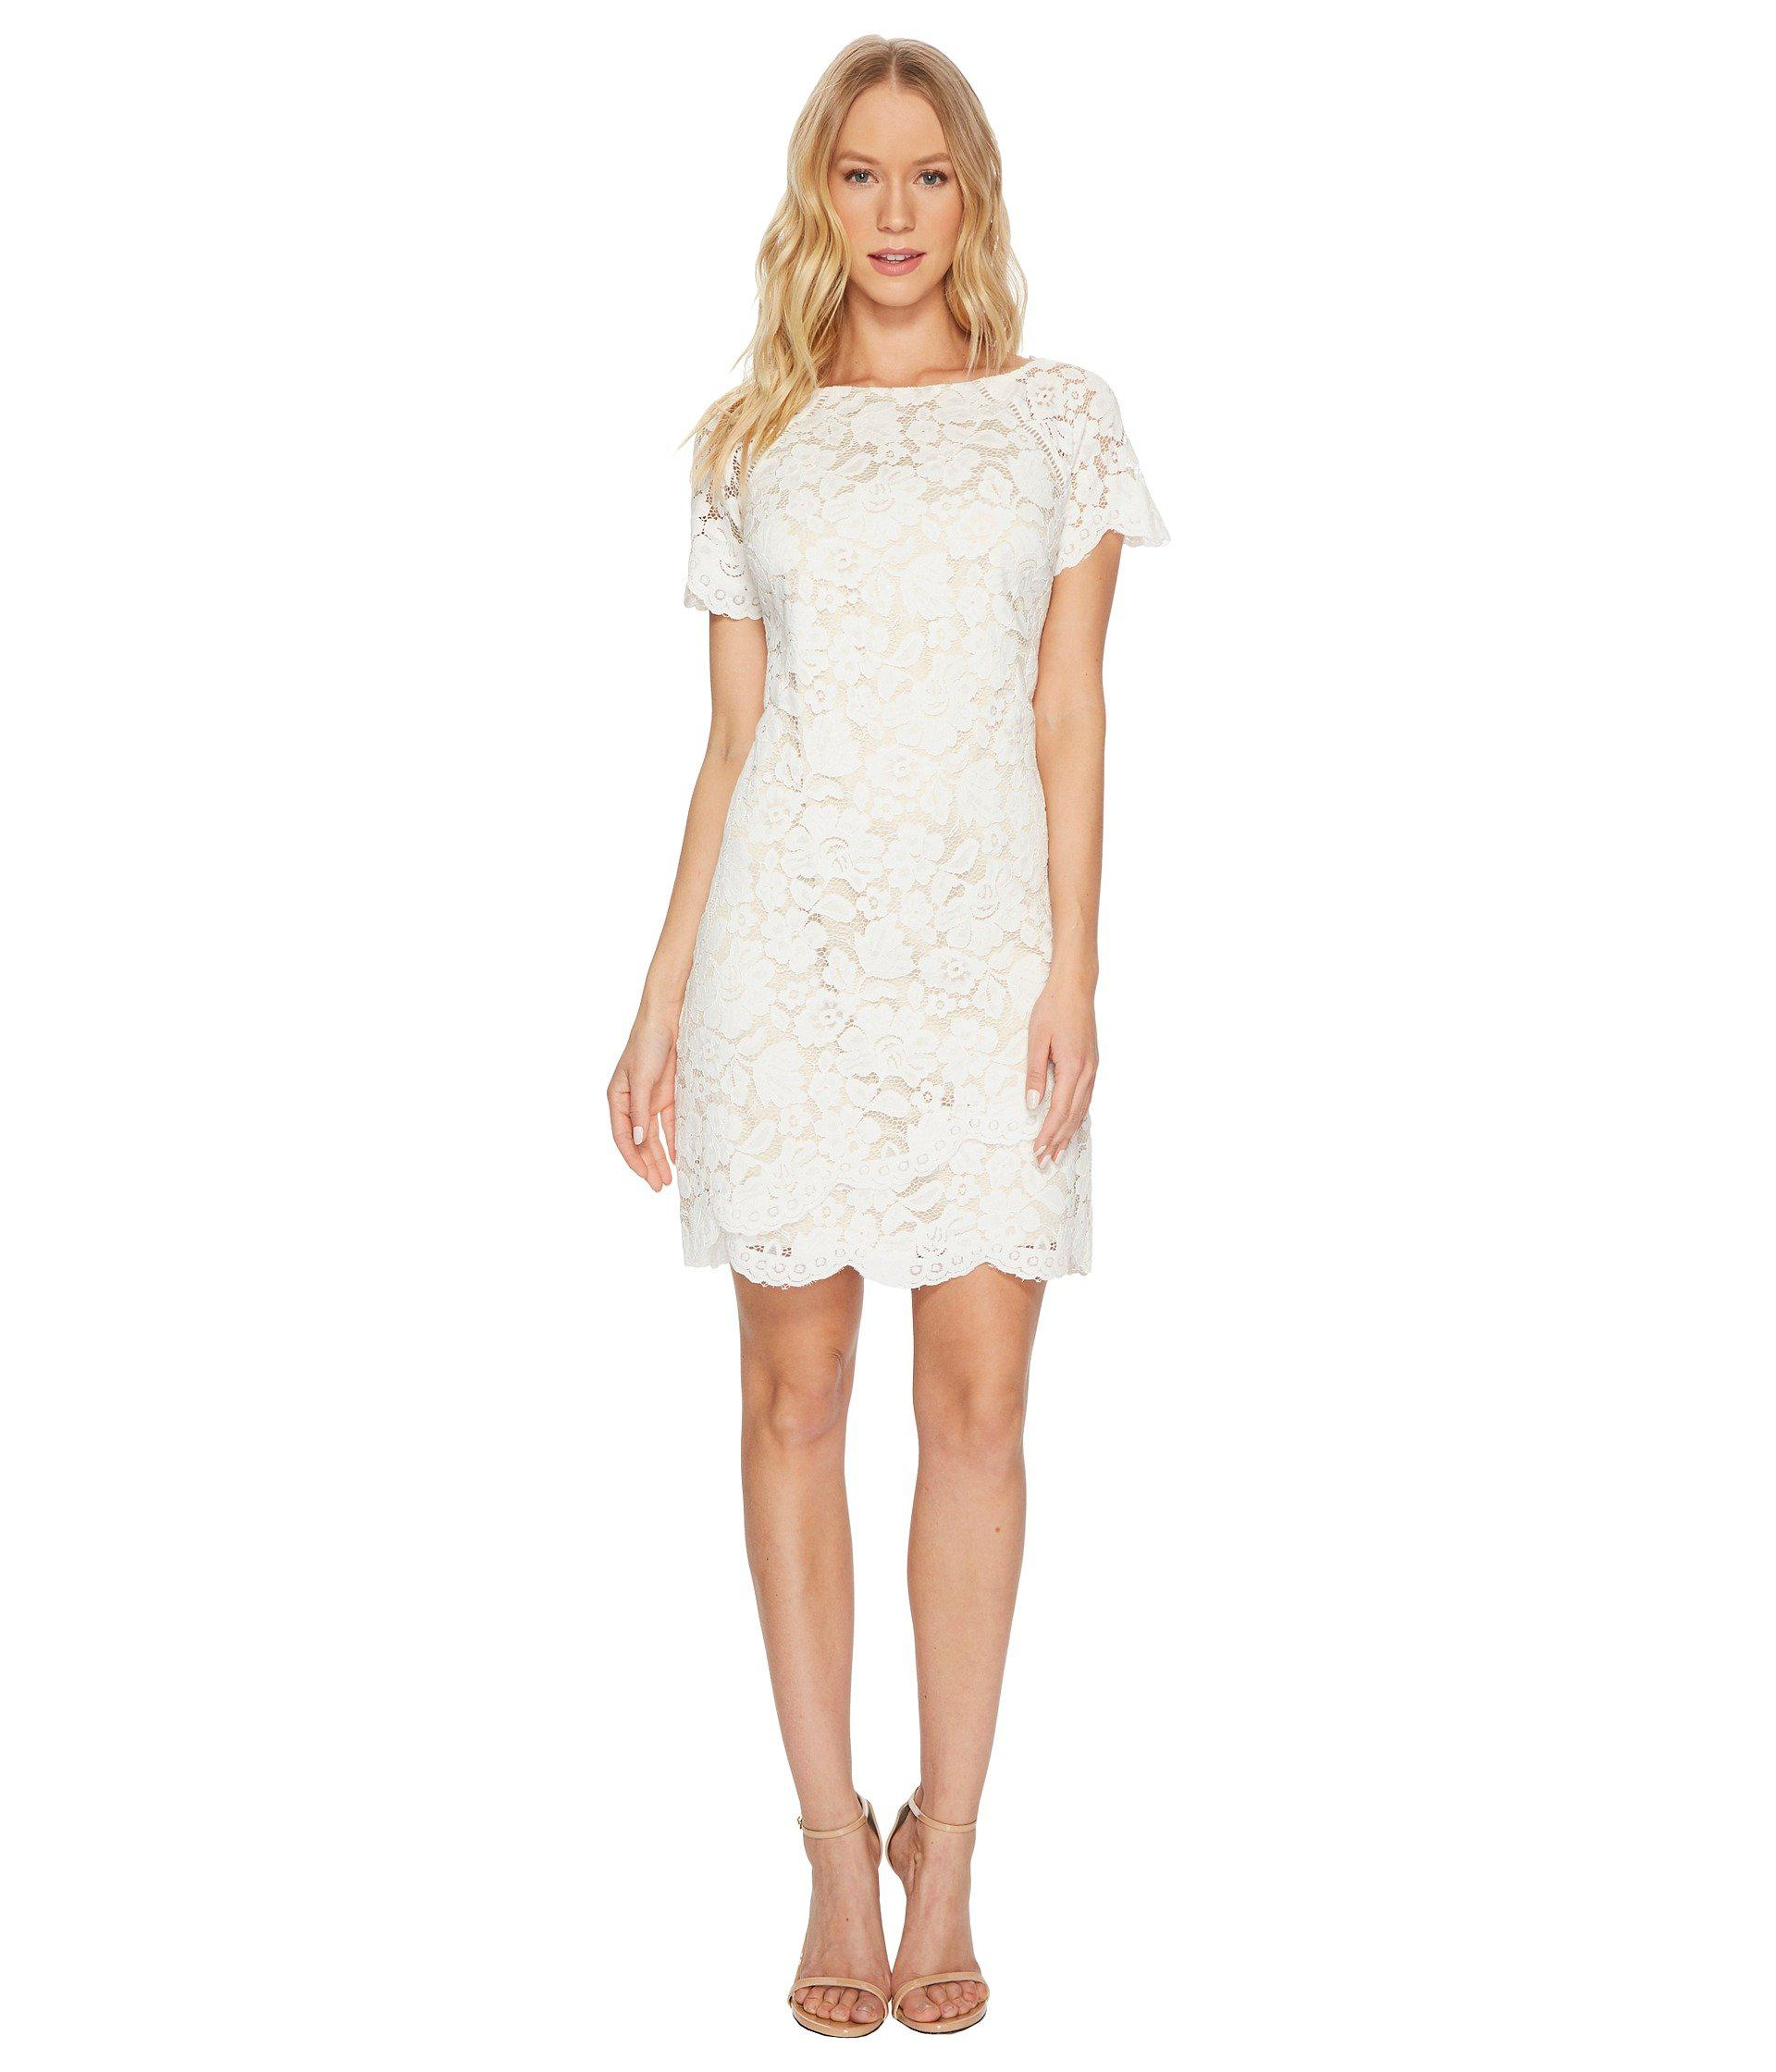 498dc187 Vince Camuto Lace Shift Dress With Scallop Details At Hem in White ...